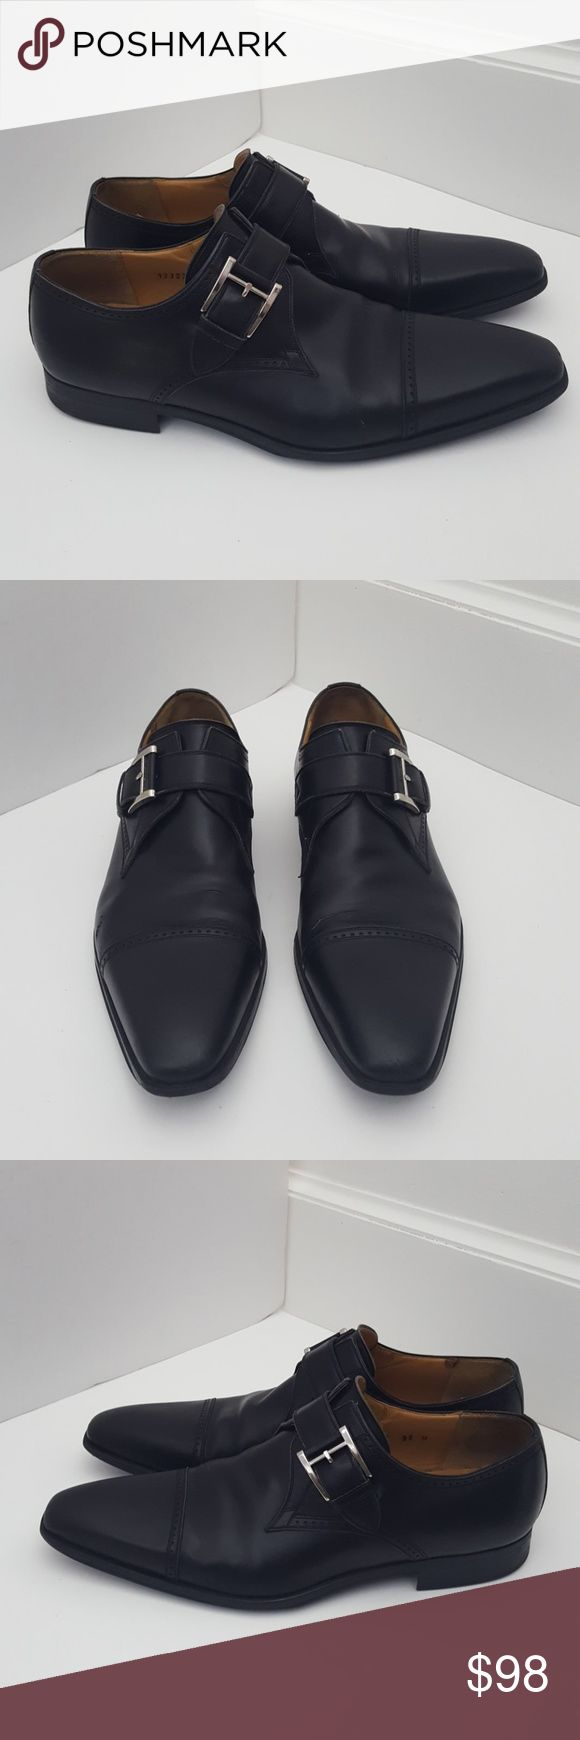 Magnanni black leather buckle oxfords 9.5 M Preowned with creasing, scuff, soil ...